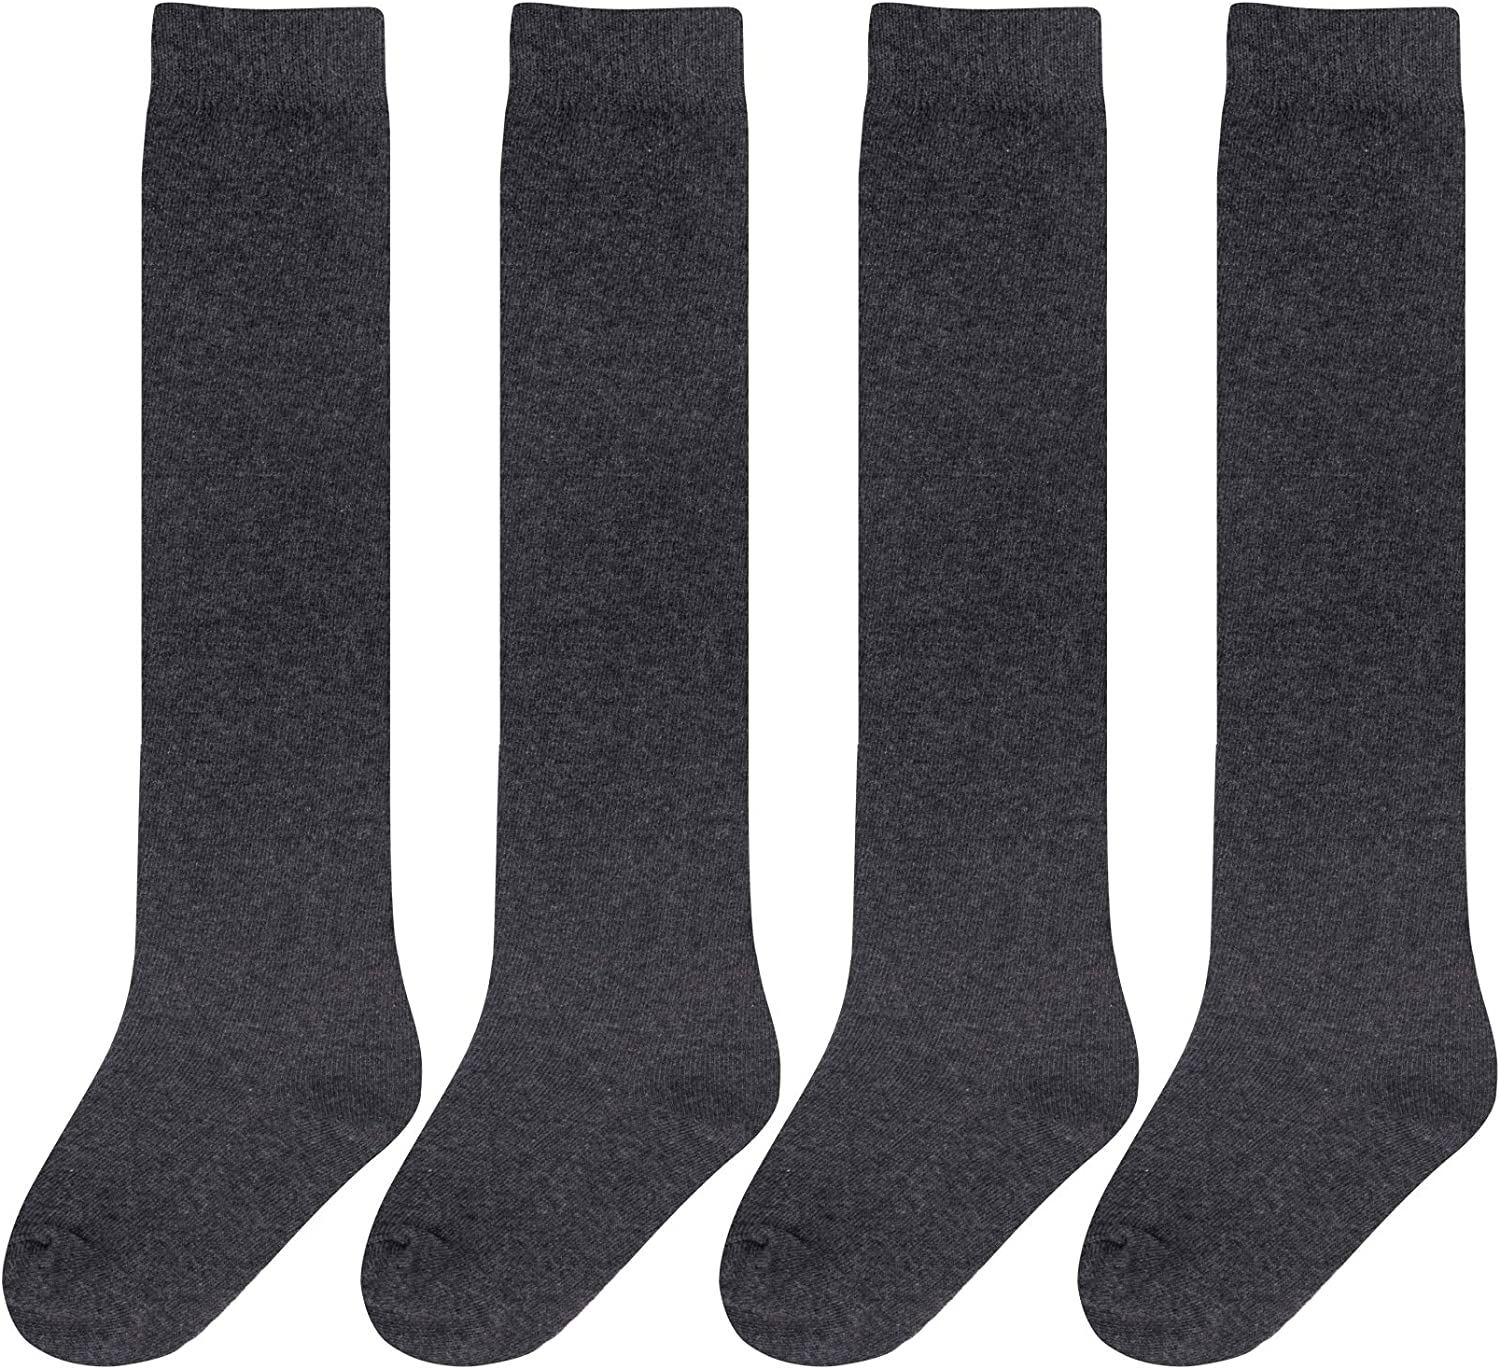 Chalier 4 Pairs Girls Knee High Socks Cotton Knit Over Craft Thigh High Socks for Baby Toddler School Uniform